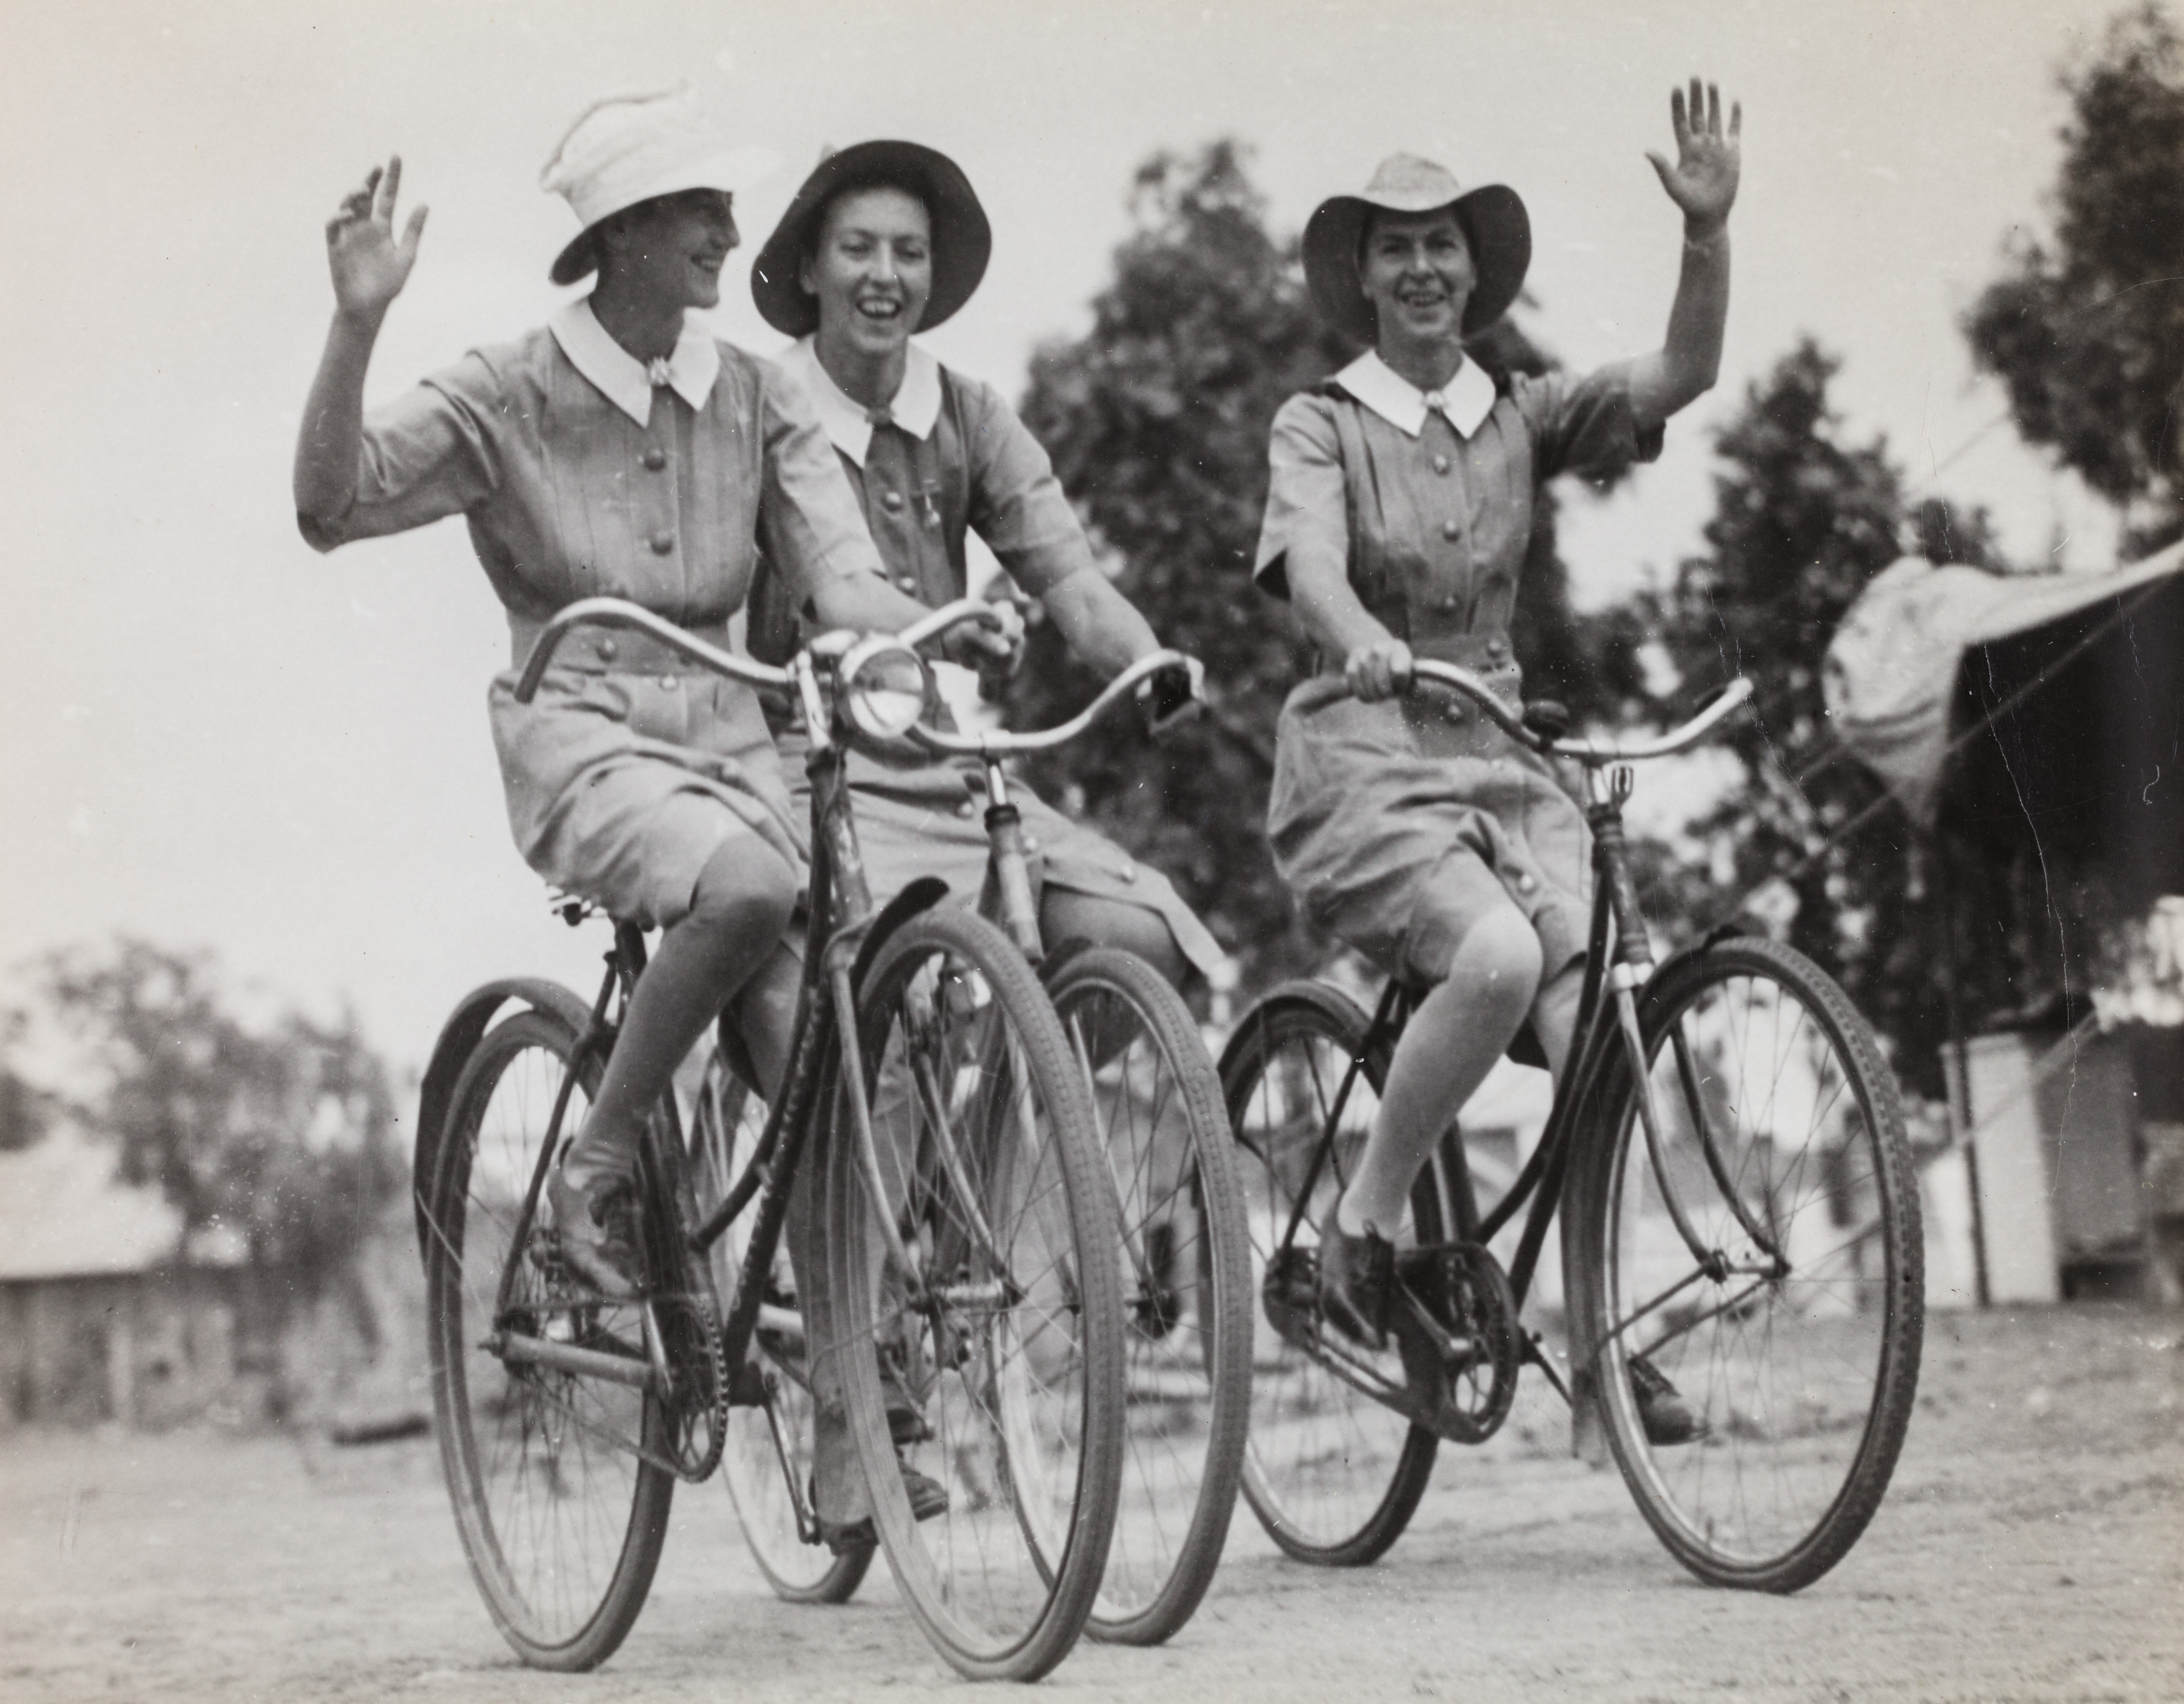 Three nurses in uniform riding bicycles and waving to the camera.